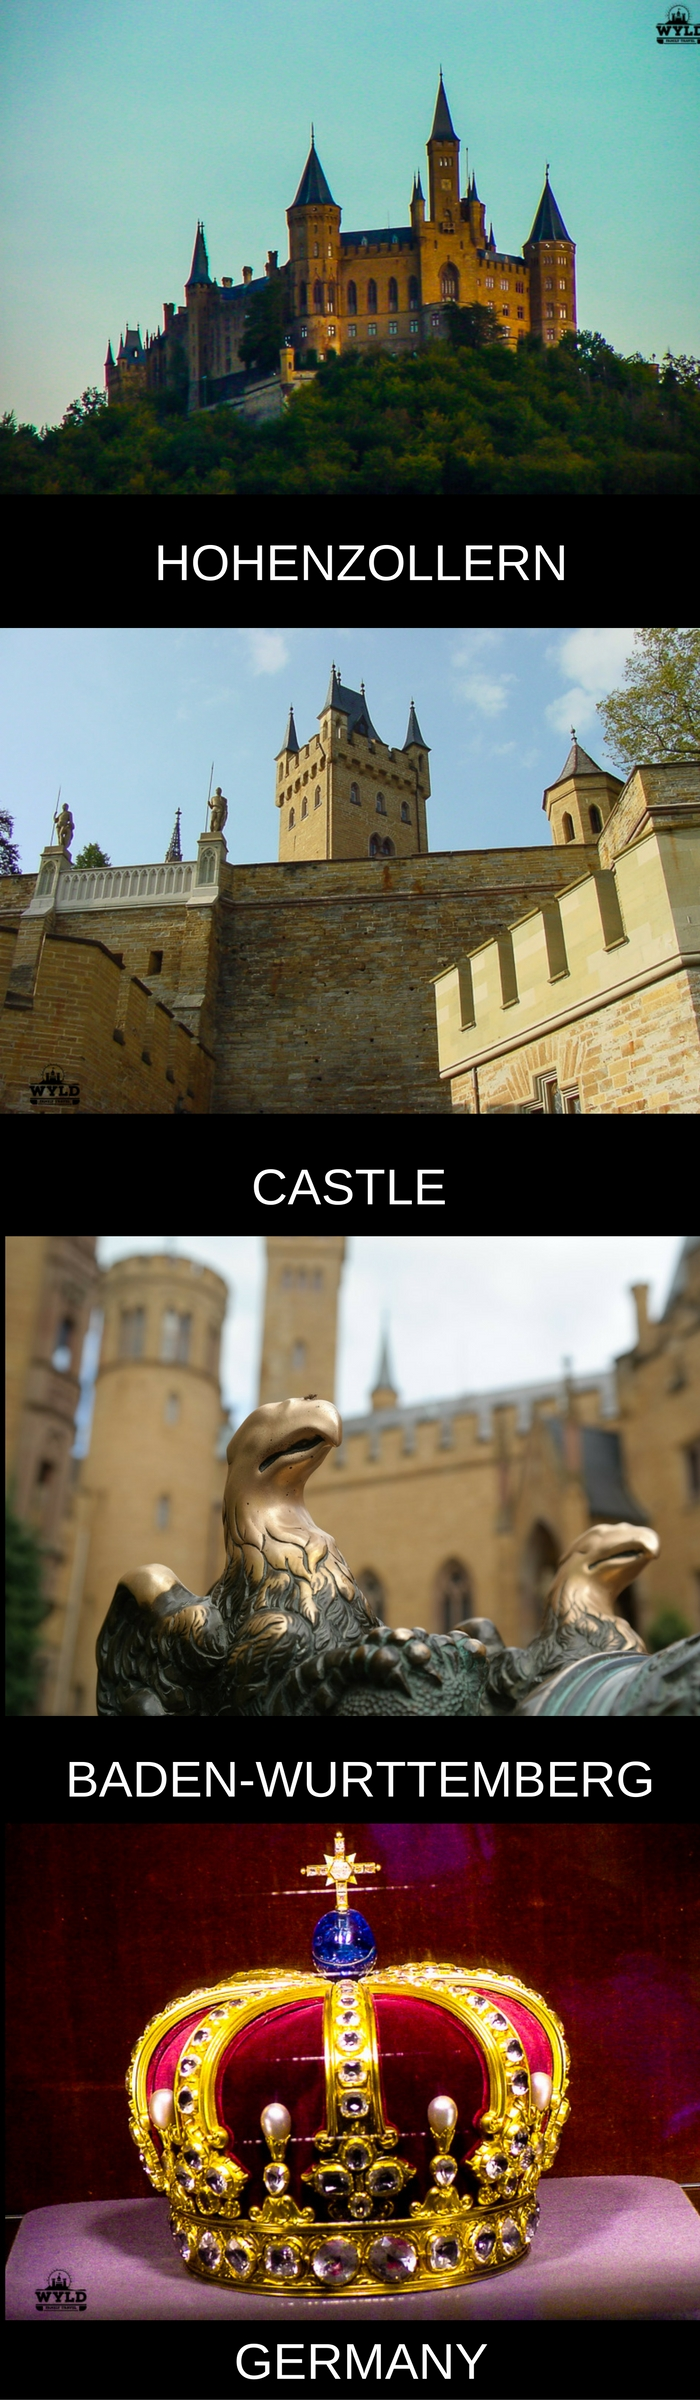 Berg Hohenzollern  was truly amazing. I could not take my eyes off it as we got…